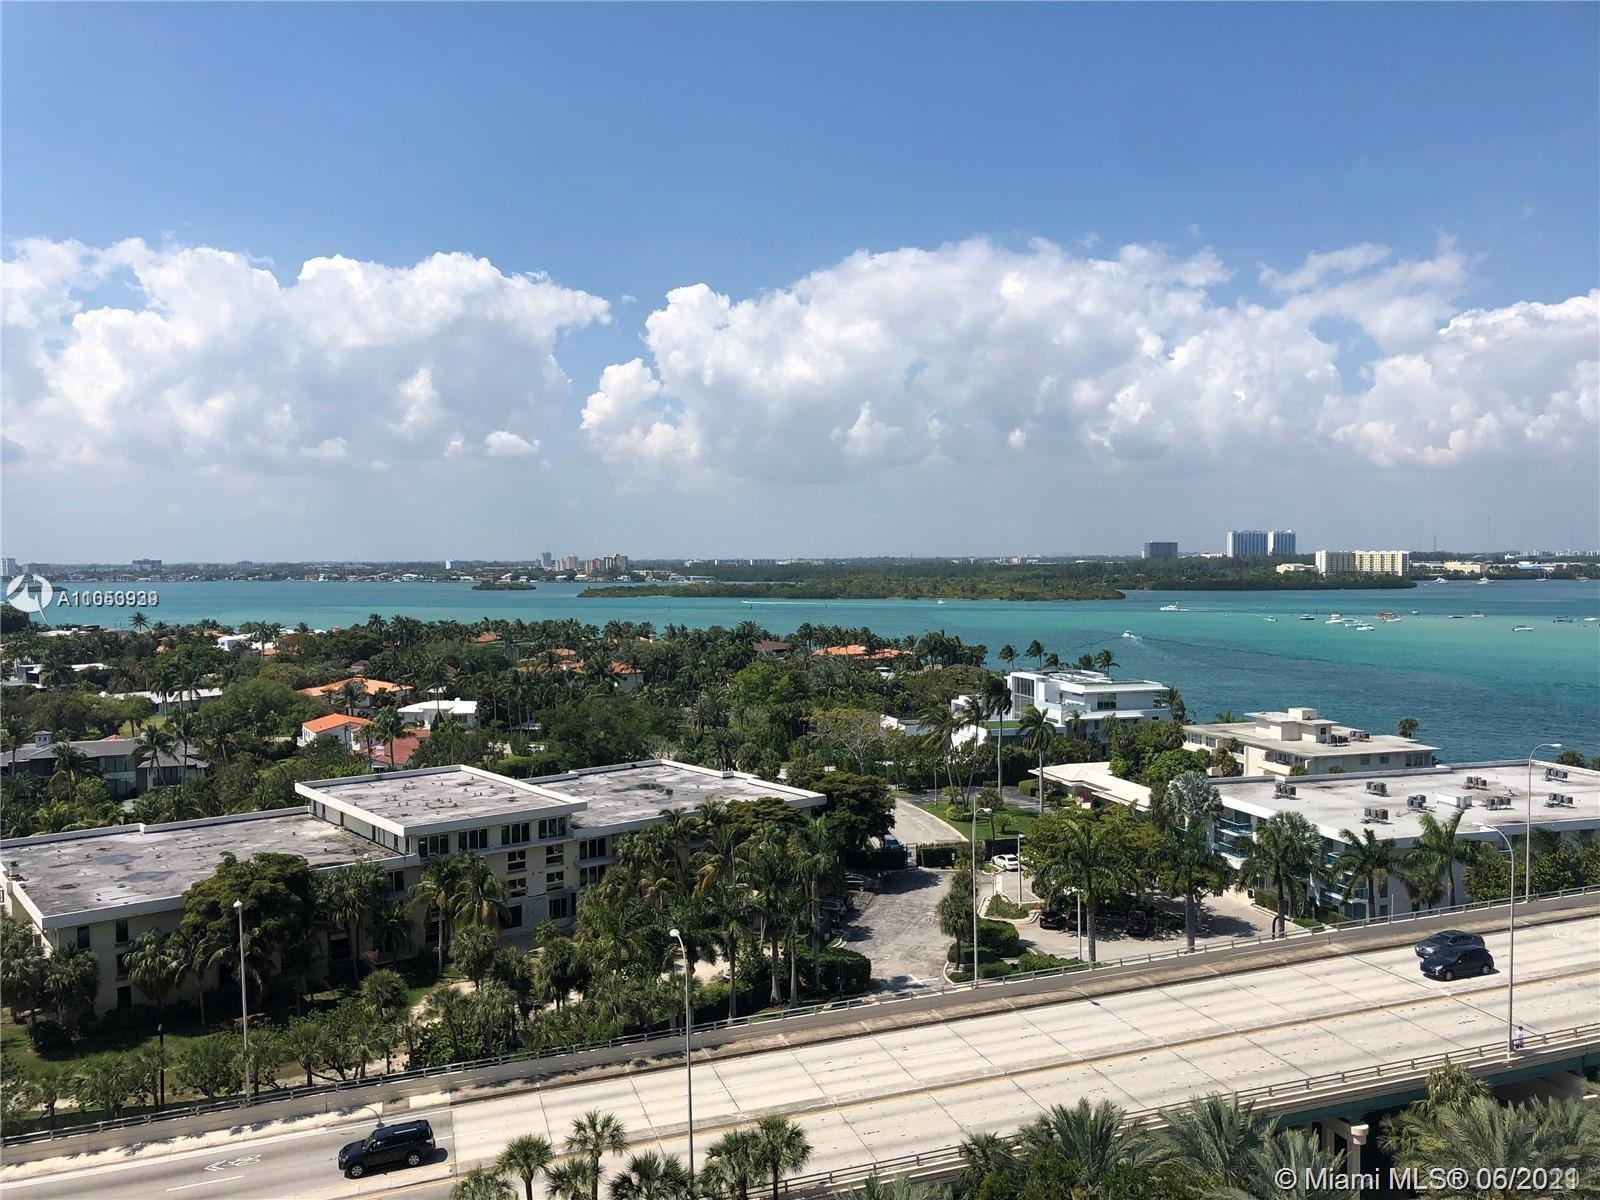 ***Located next door to the elegant Ritz Carlton Hotel in Bal Harbour the Beautiful Harbour House Co